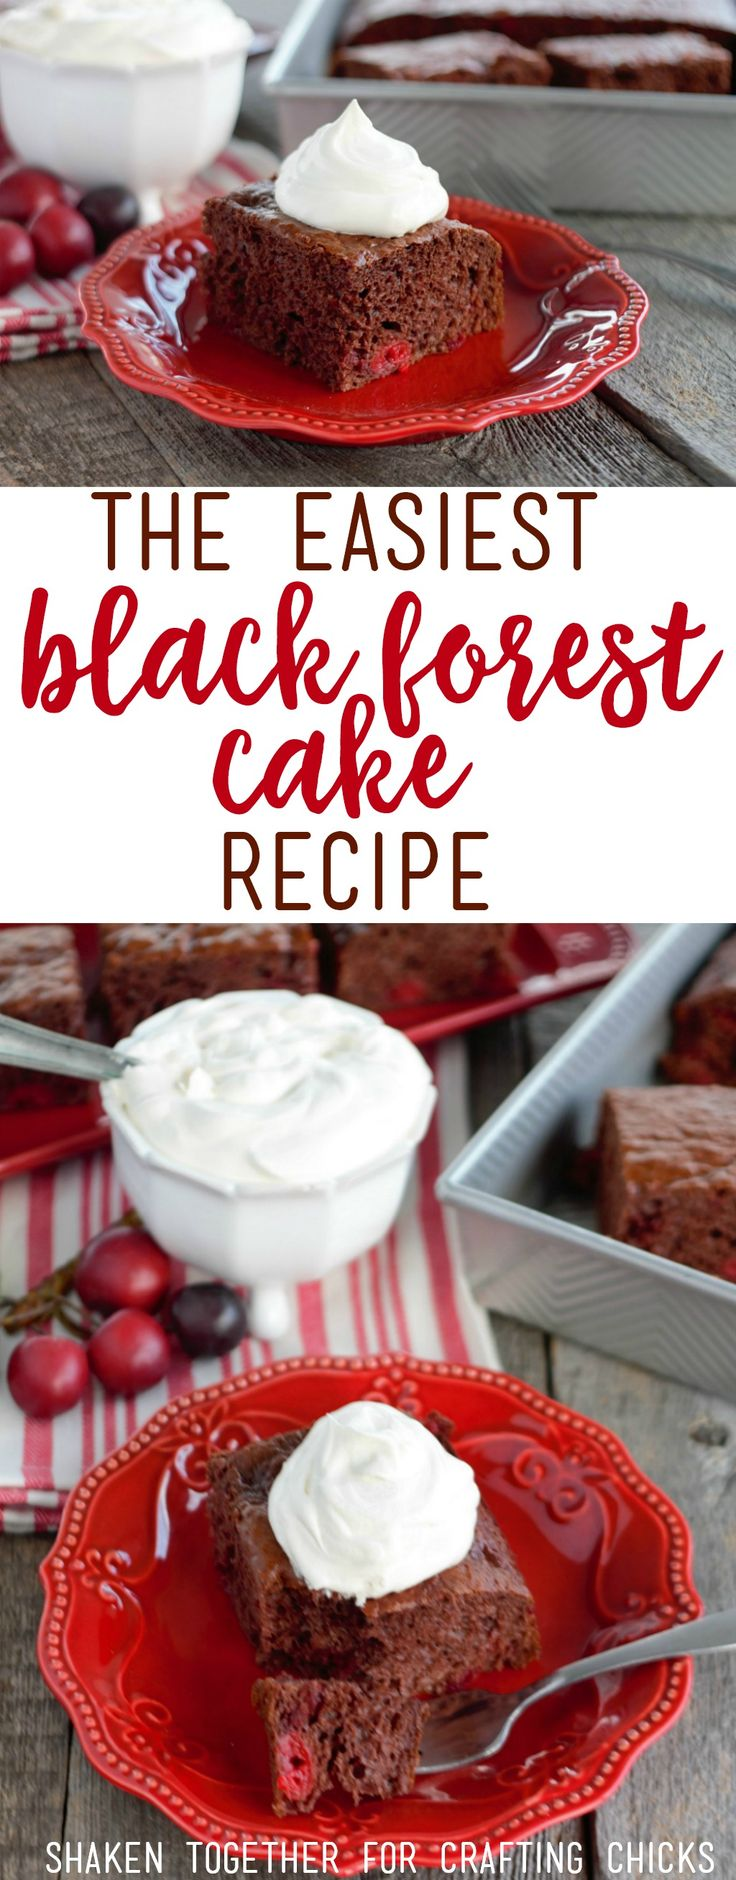 Need an unbelievably easy dessert? You'll love this Black Forest Cake Recipe with just 4 ingredients!